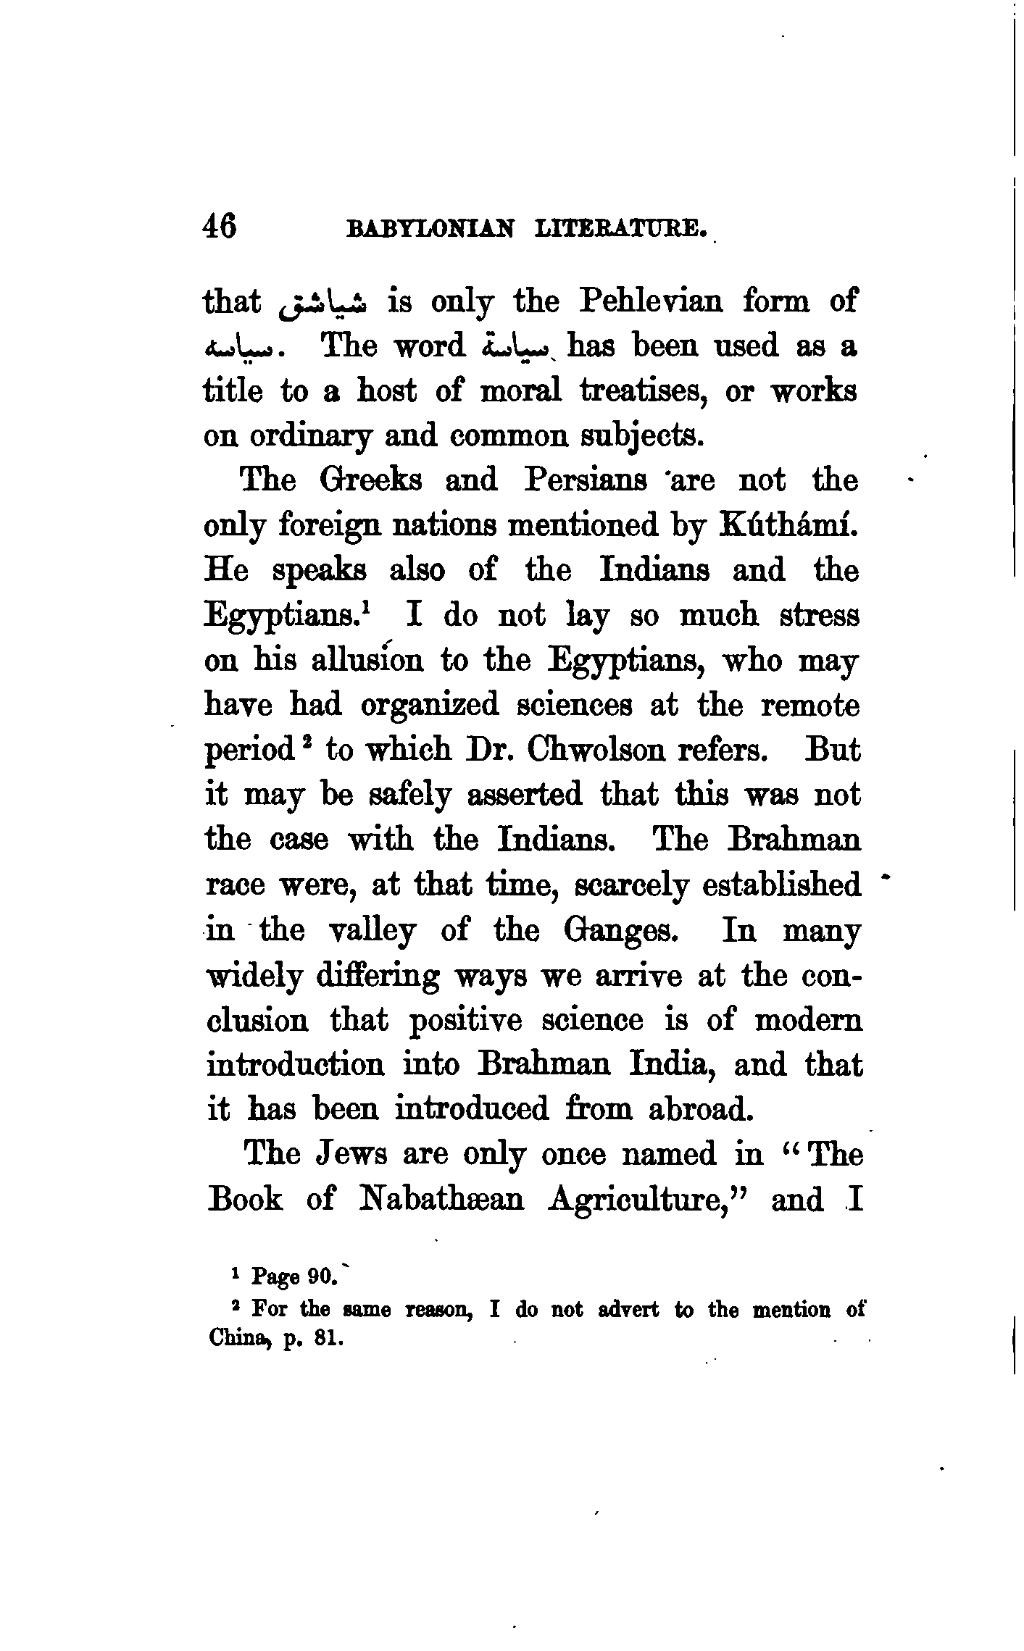 004 Page62 1024px An Essay On The Age And Antiquity Of Book Nabathaean Agriculture Djvu How To Mention In Magnificent A Reference Harvard Style Oscola Uk Large